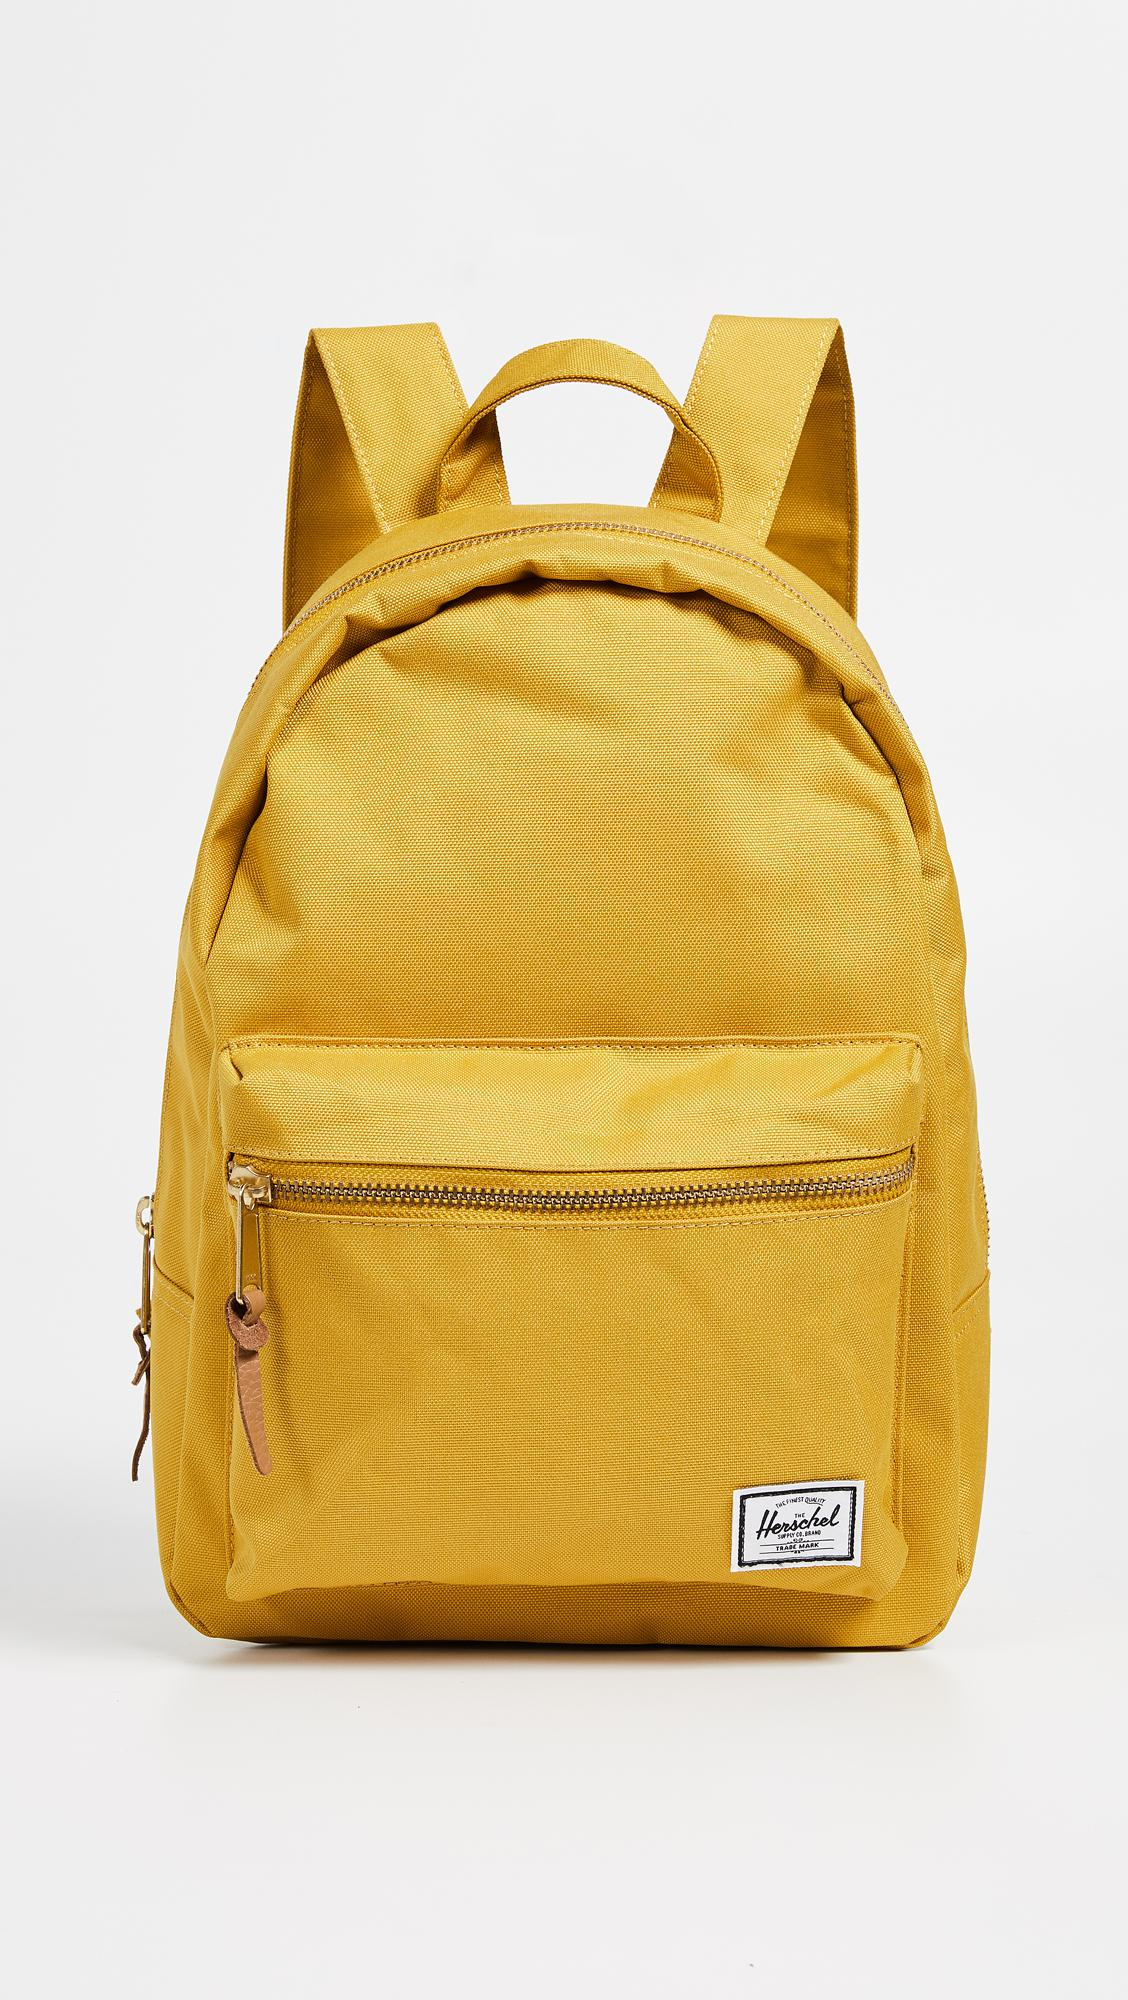 b24c222cb82 Herschel Supply Co. Grove X-small Backpack in Yellow - Lyst